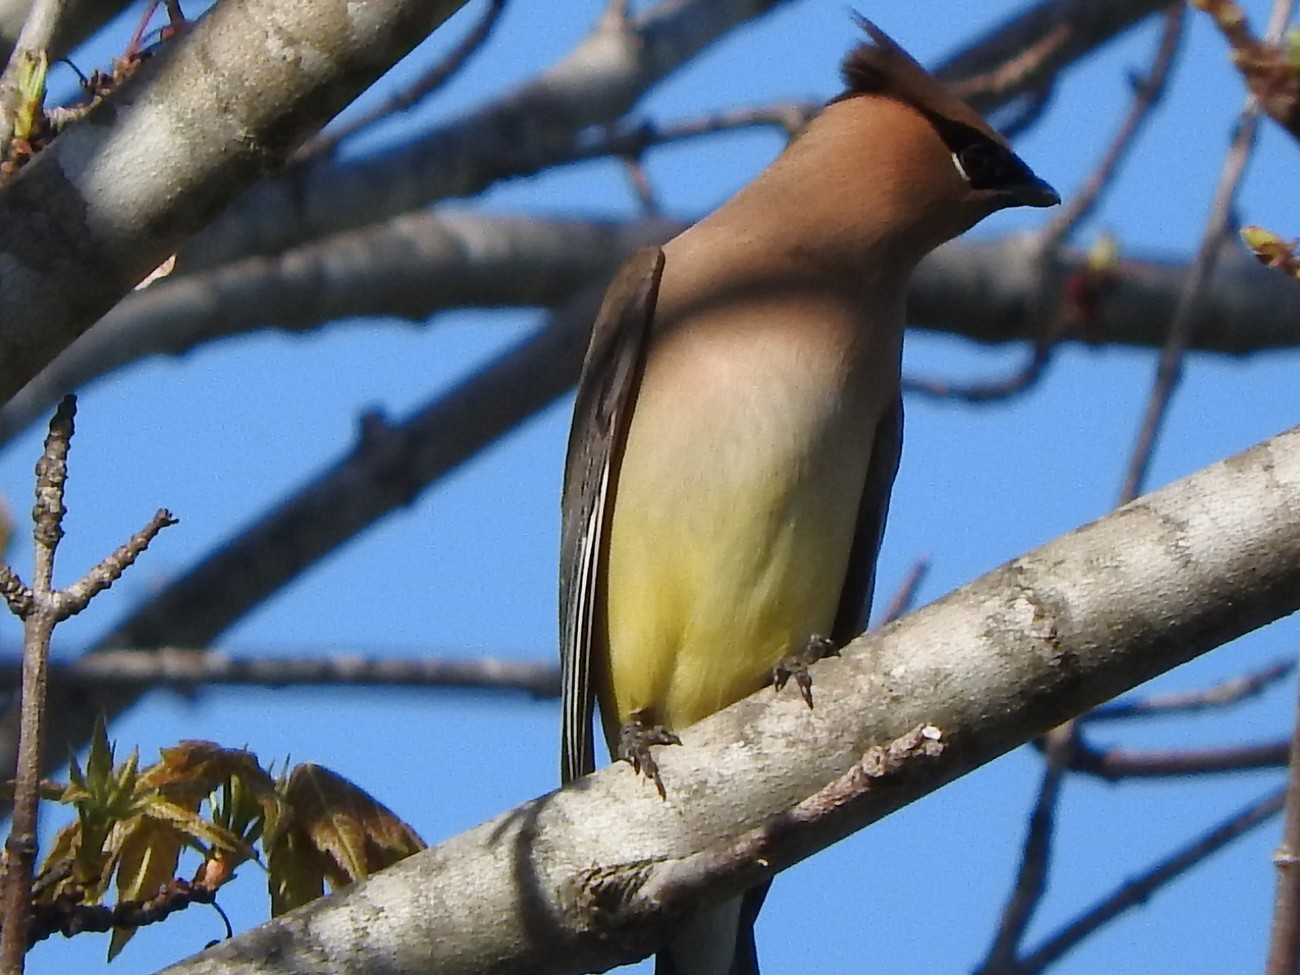 Sitting outside after dinner ( with camera of course) when I got a surprise visit from a small flock of Cedar Waxwings. Before this Spring I had only seen them once in my yard, This is their third visit this Spring. Feeling very blessed and happy